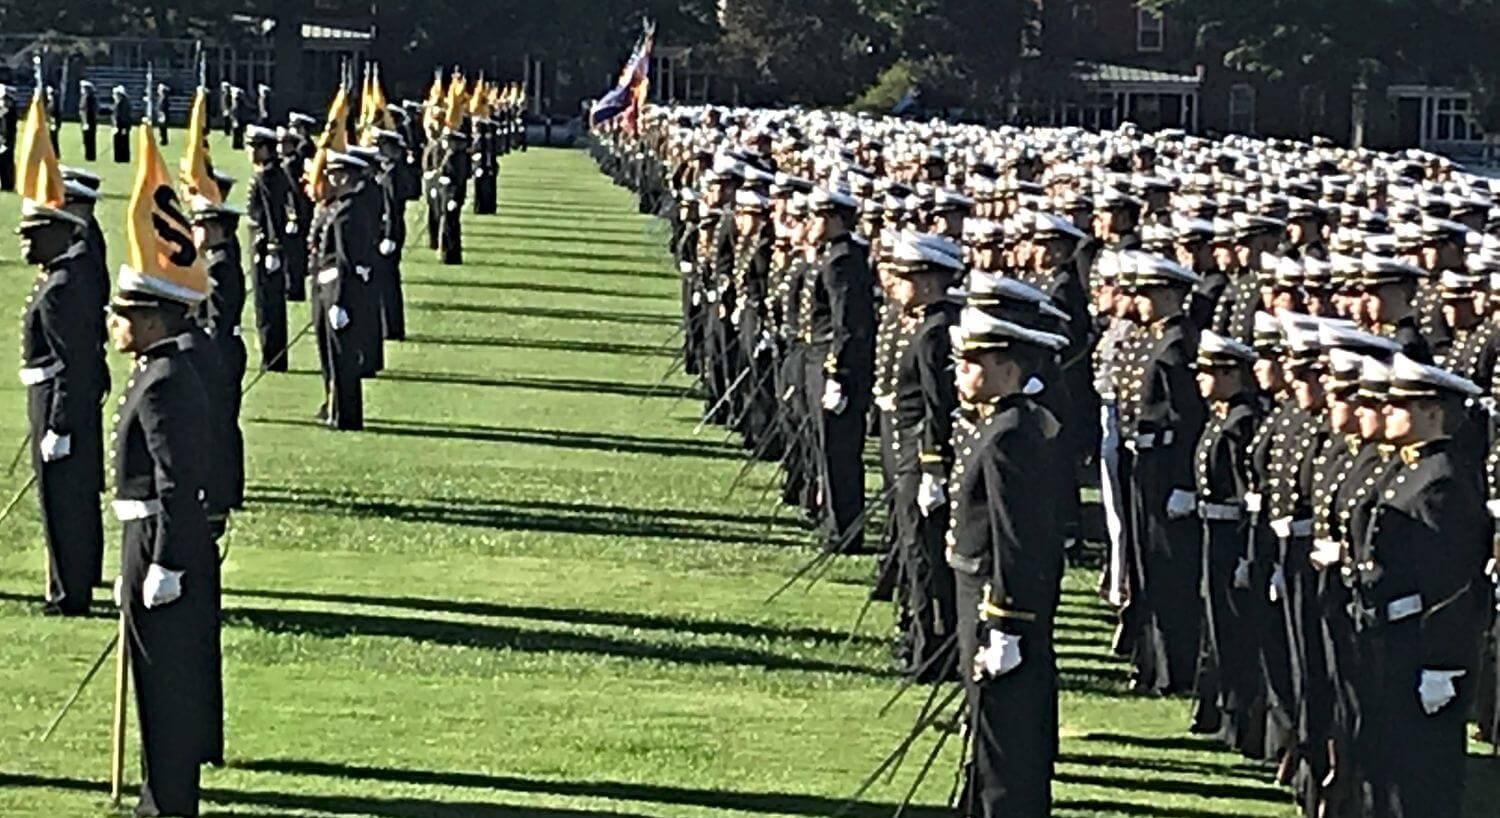 Naval Academy cadets standing at attention in a green field